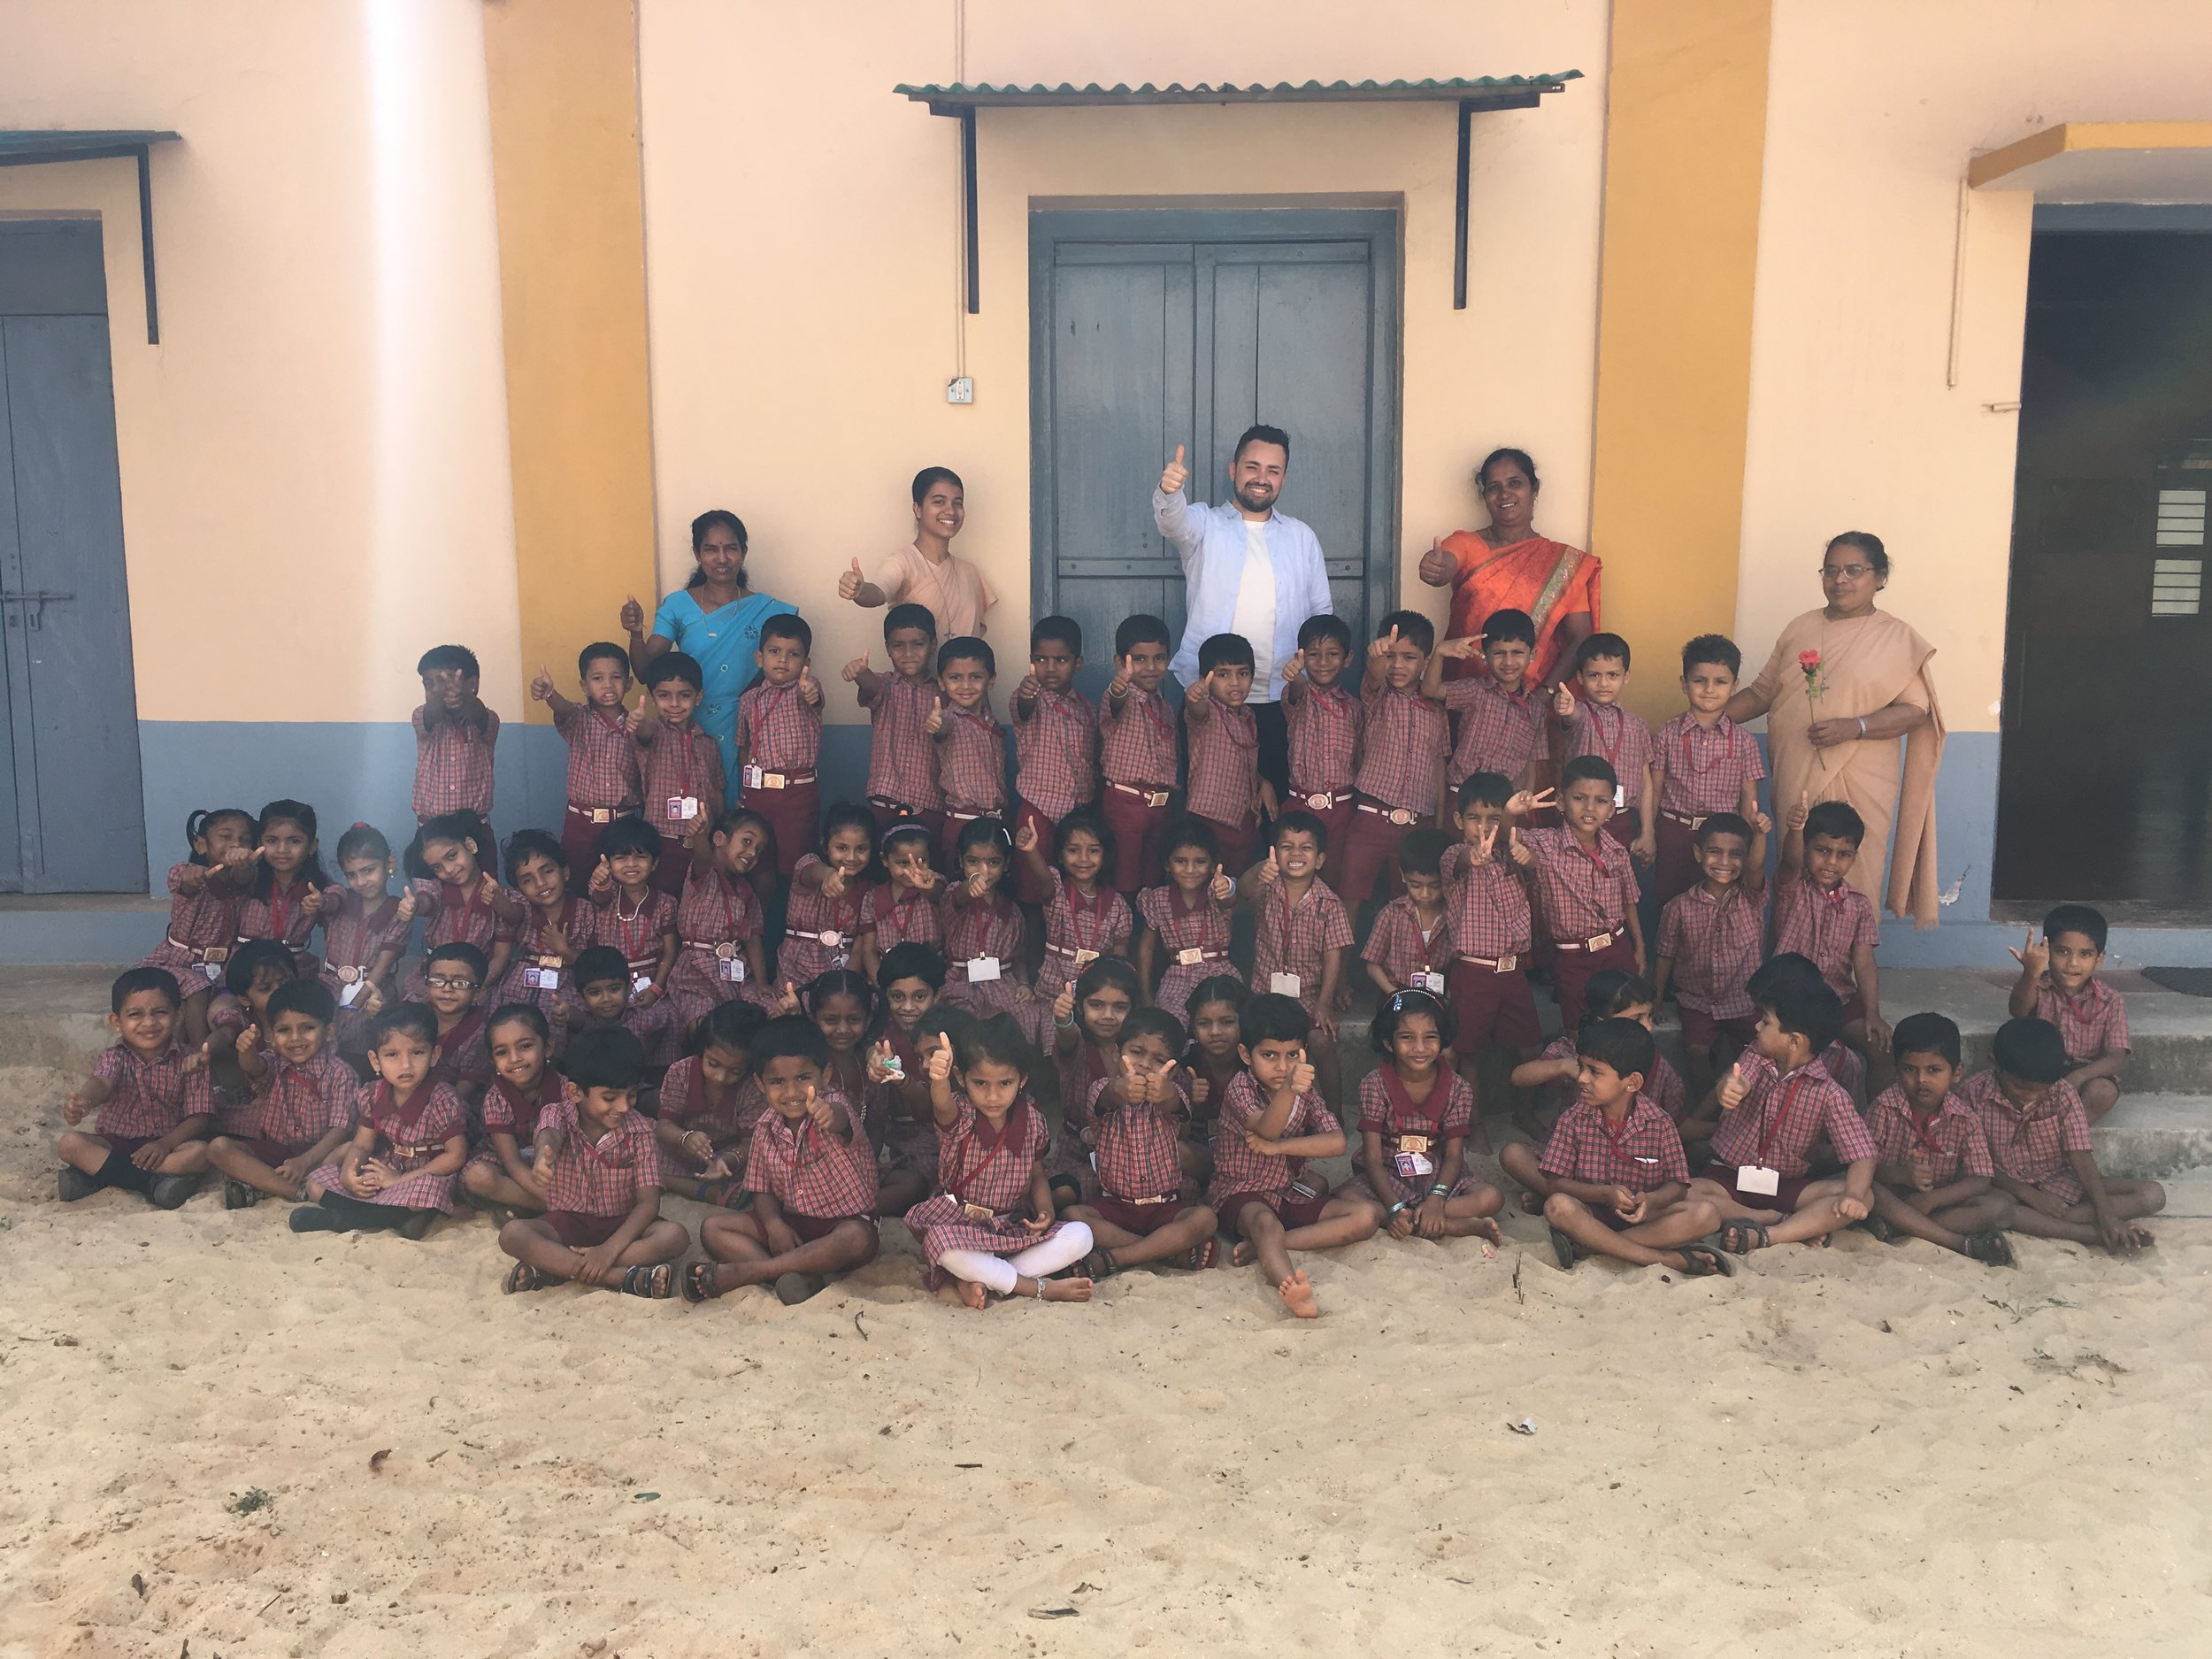 Samuel Pearson with students and teachers at the local Catholic primary school of the parish he stayed at in India.